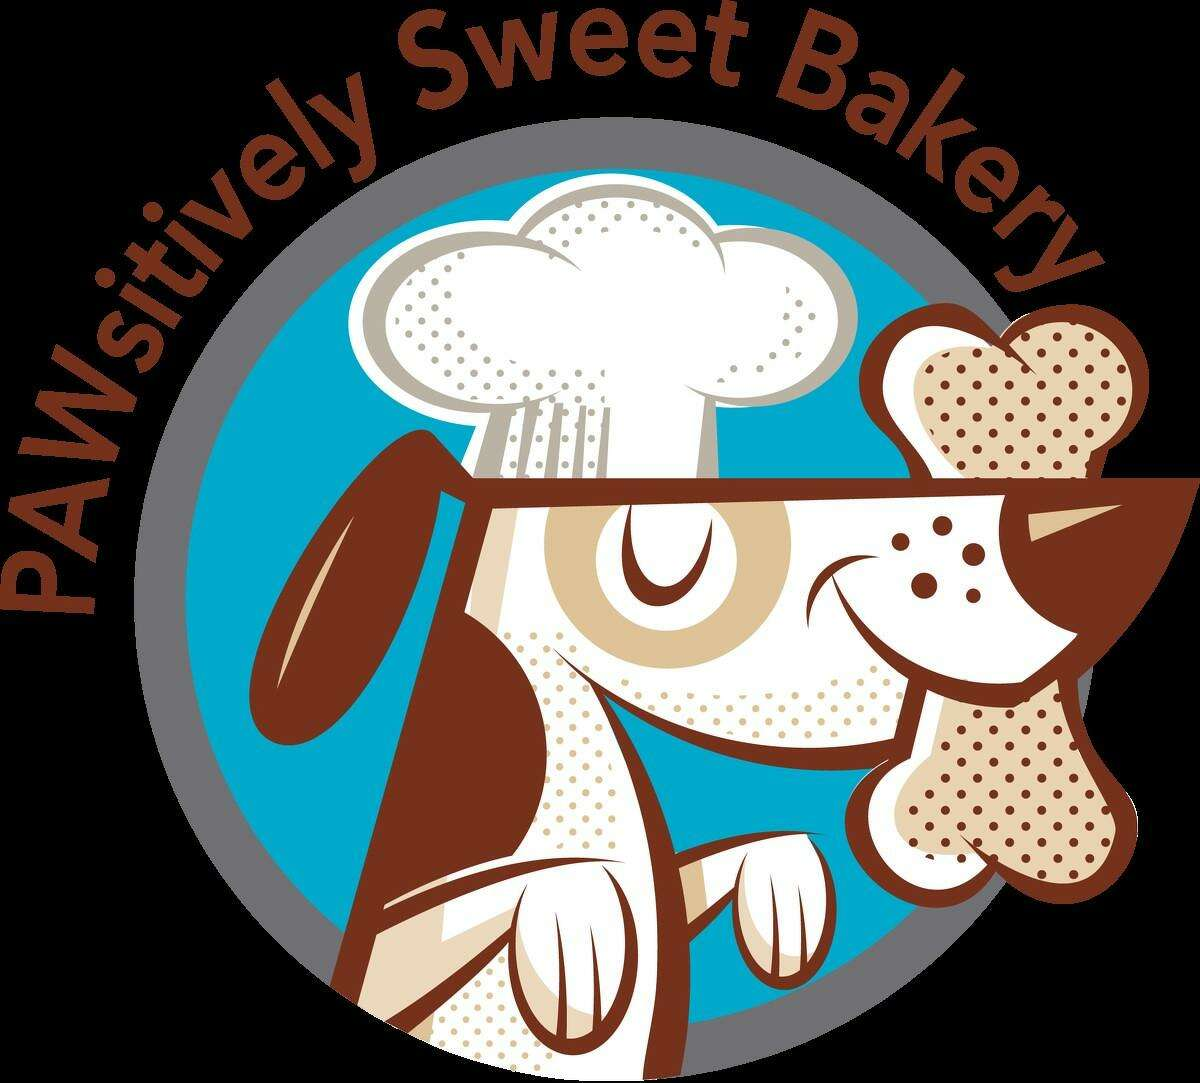 As farmers markets go, you can fetch PAWsitively treats at The Pearl Farmers Market on Saturdays and Sundays, and at the new Alamo Heights Farmers Market on Sundays at Alamo Quarry Market.